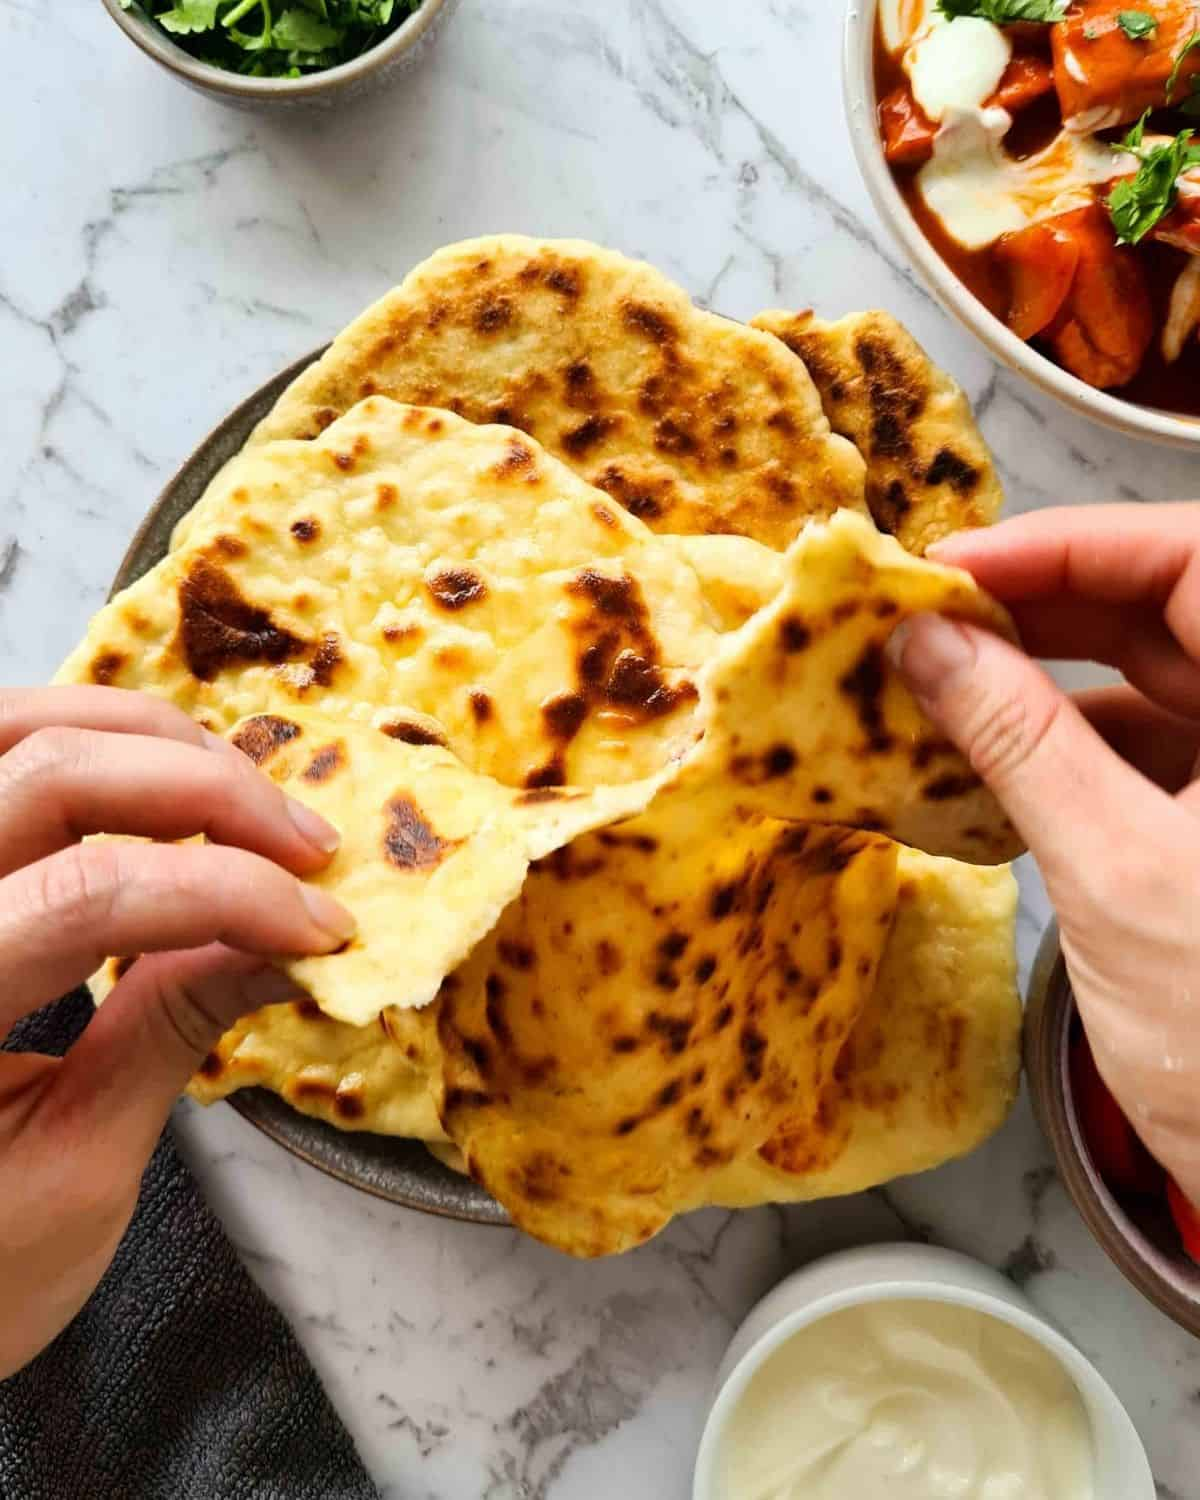 A piece of naan bread being teared apart